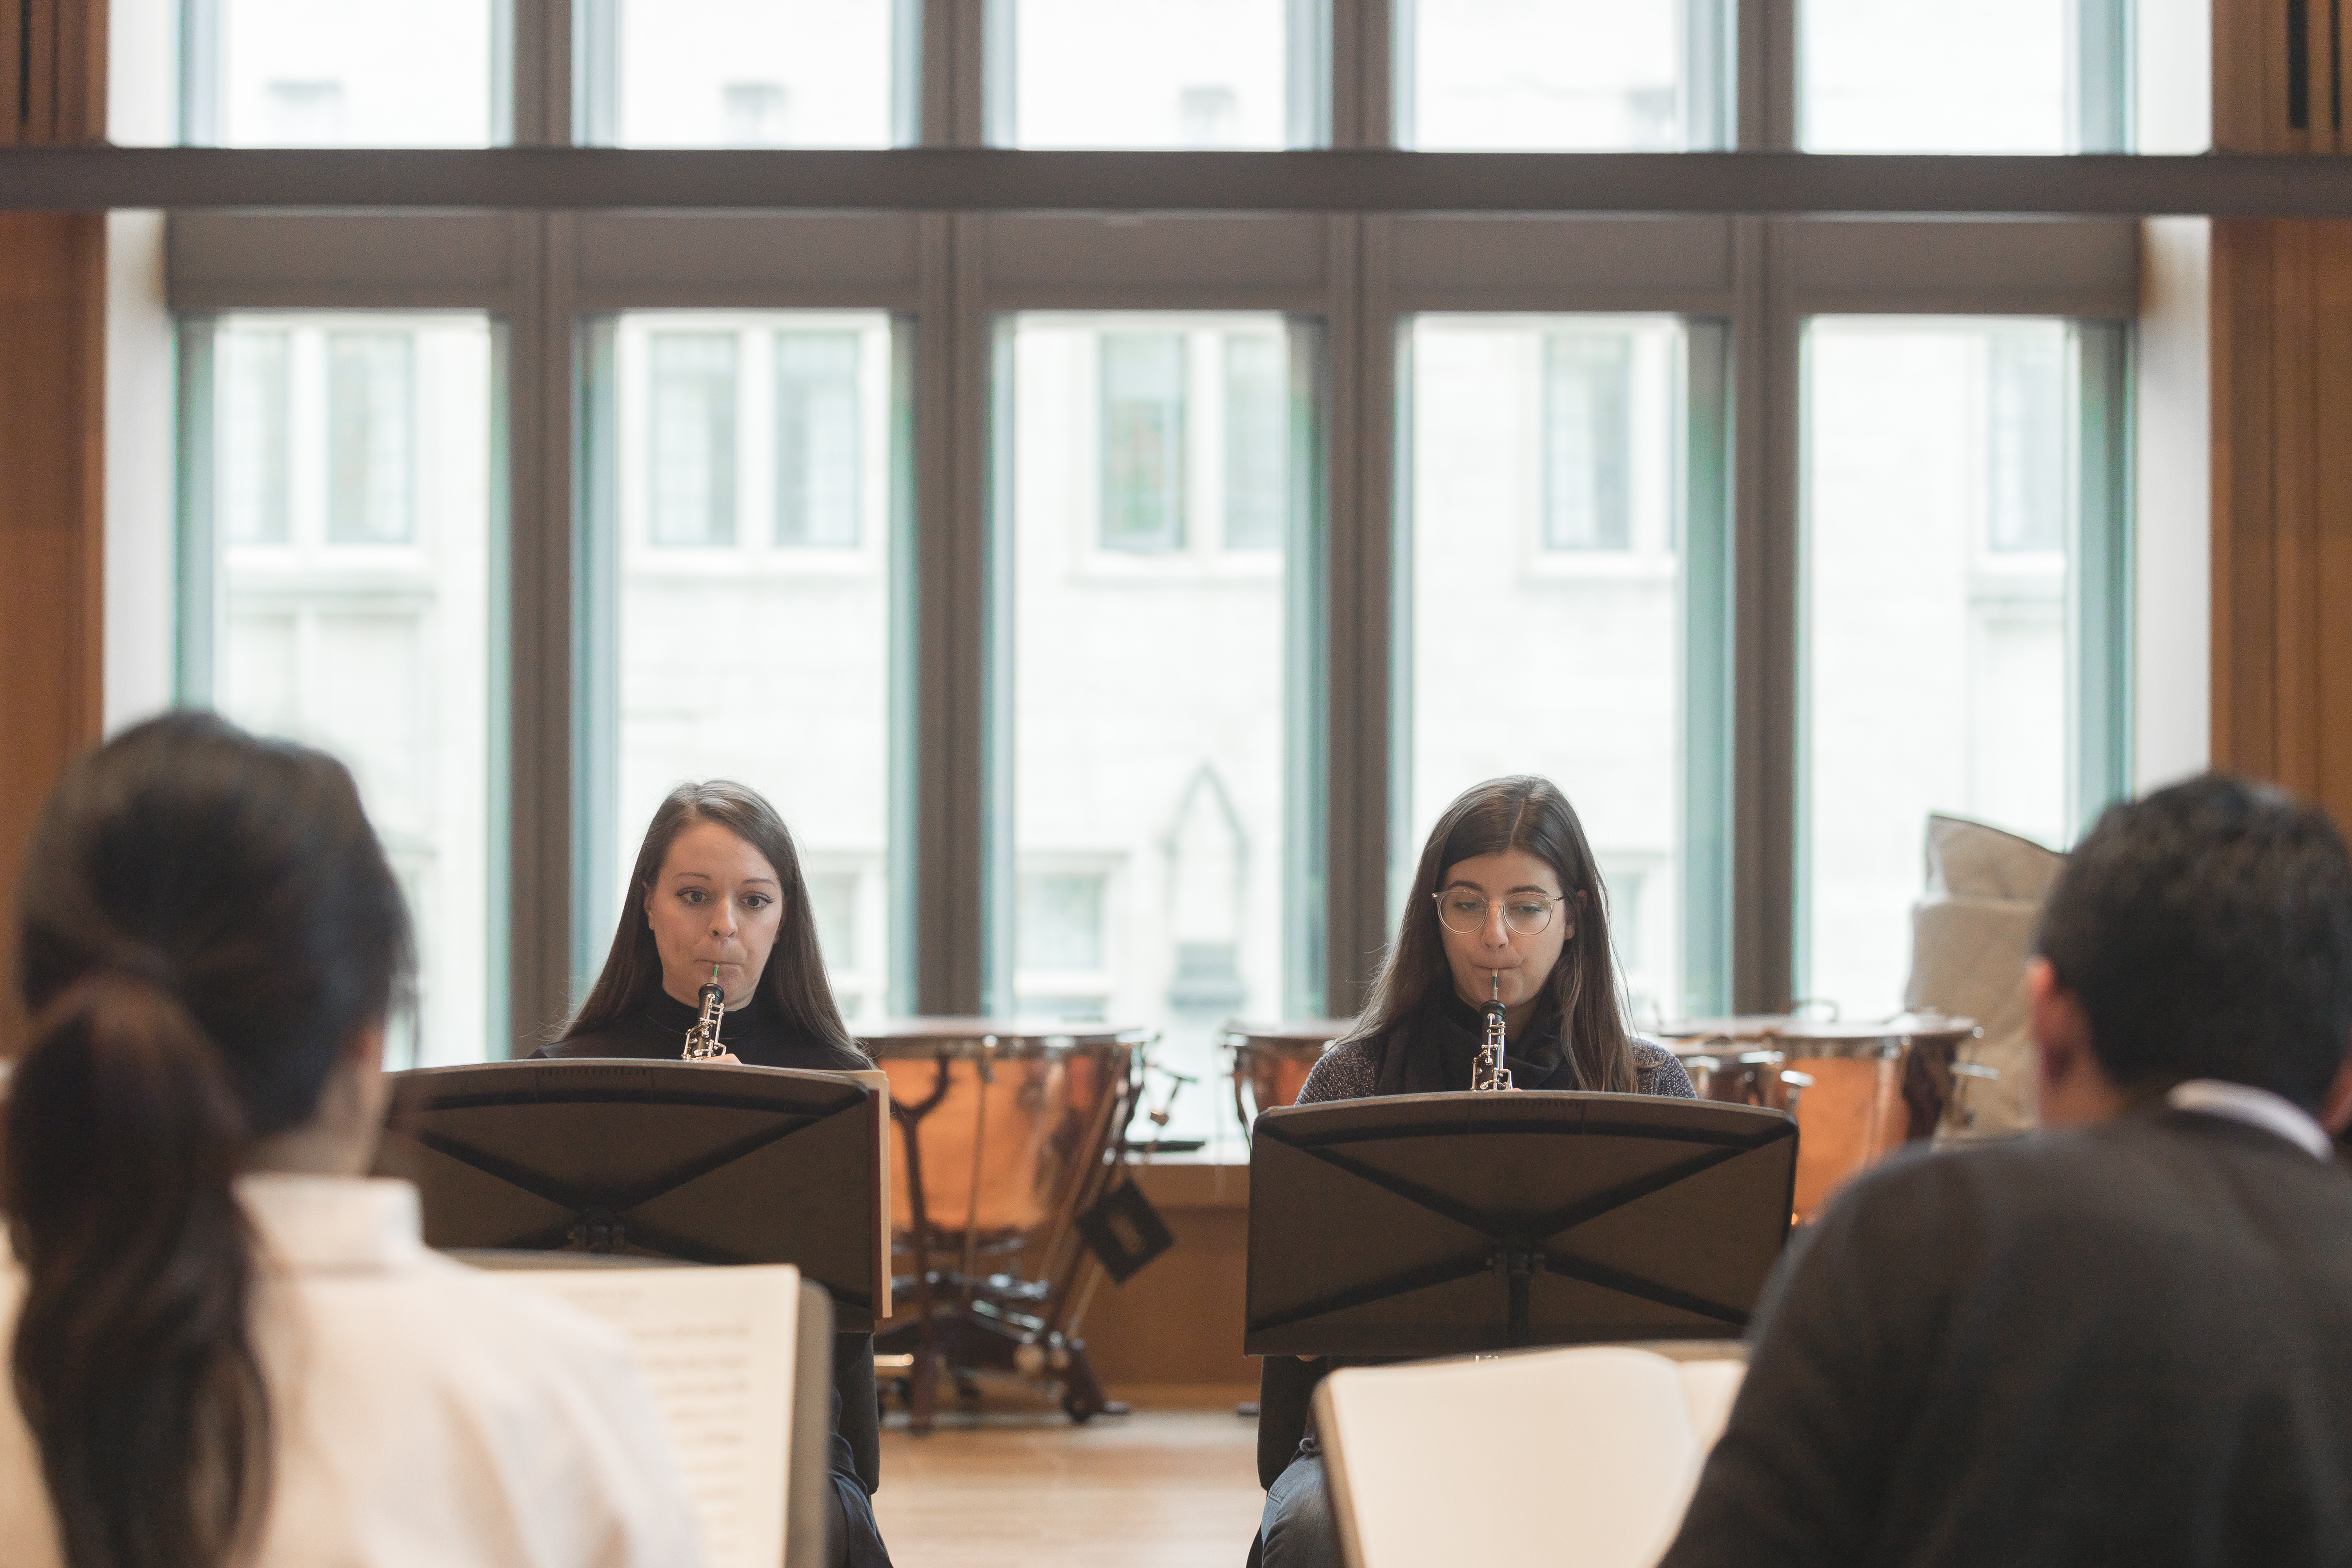 Students rehearsing in the Orchestra Rehearsal Hall